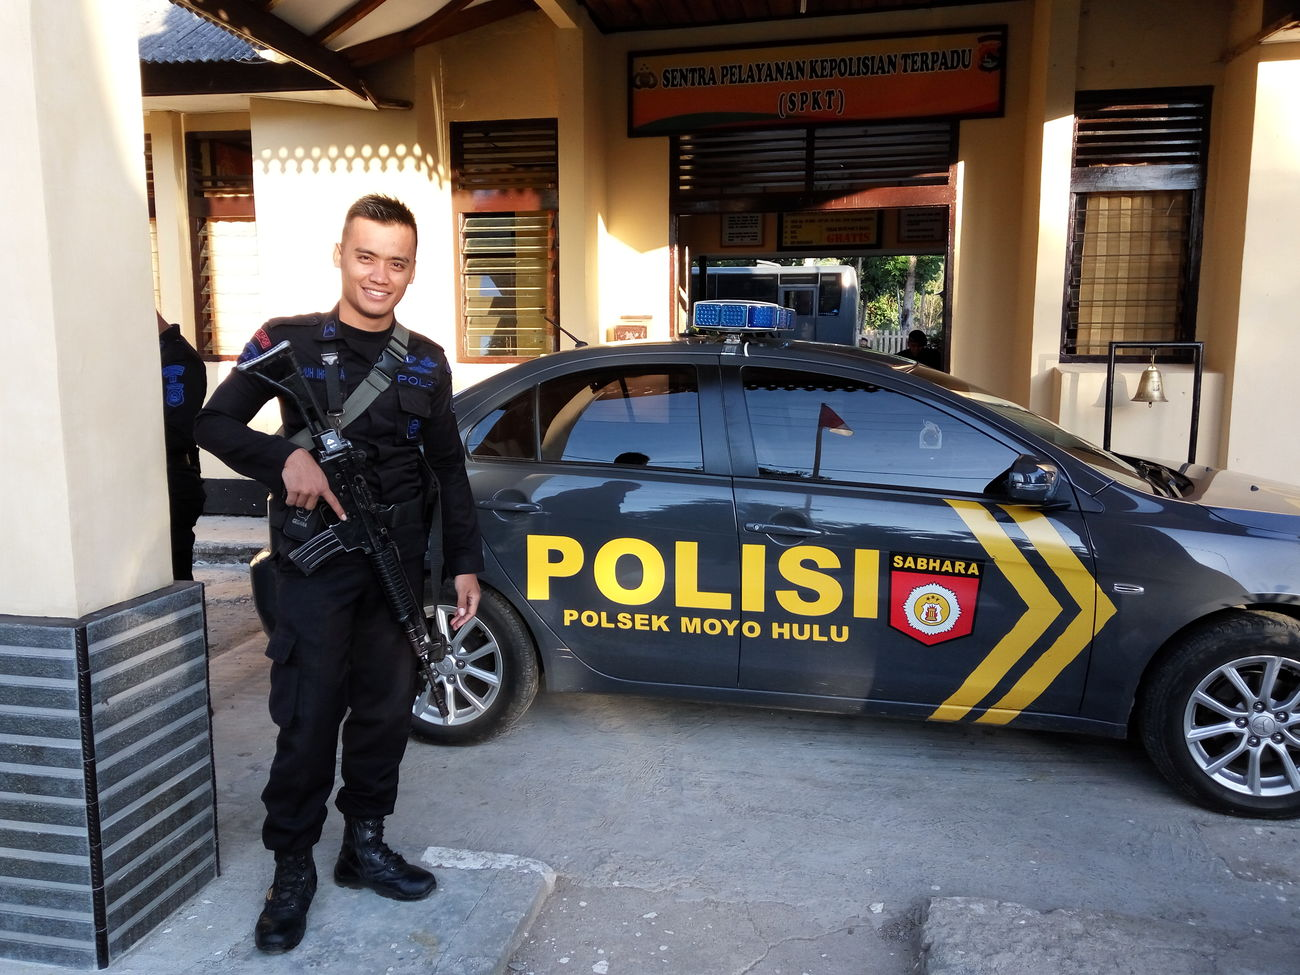 Myjob Policeman That's Me Original Photo to day